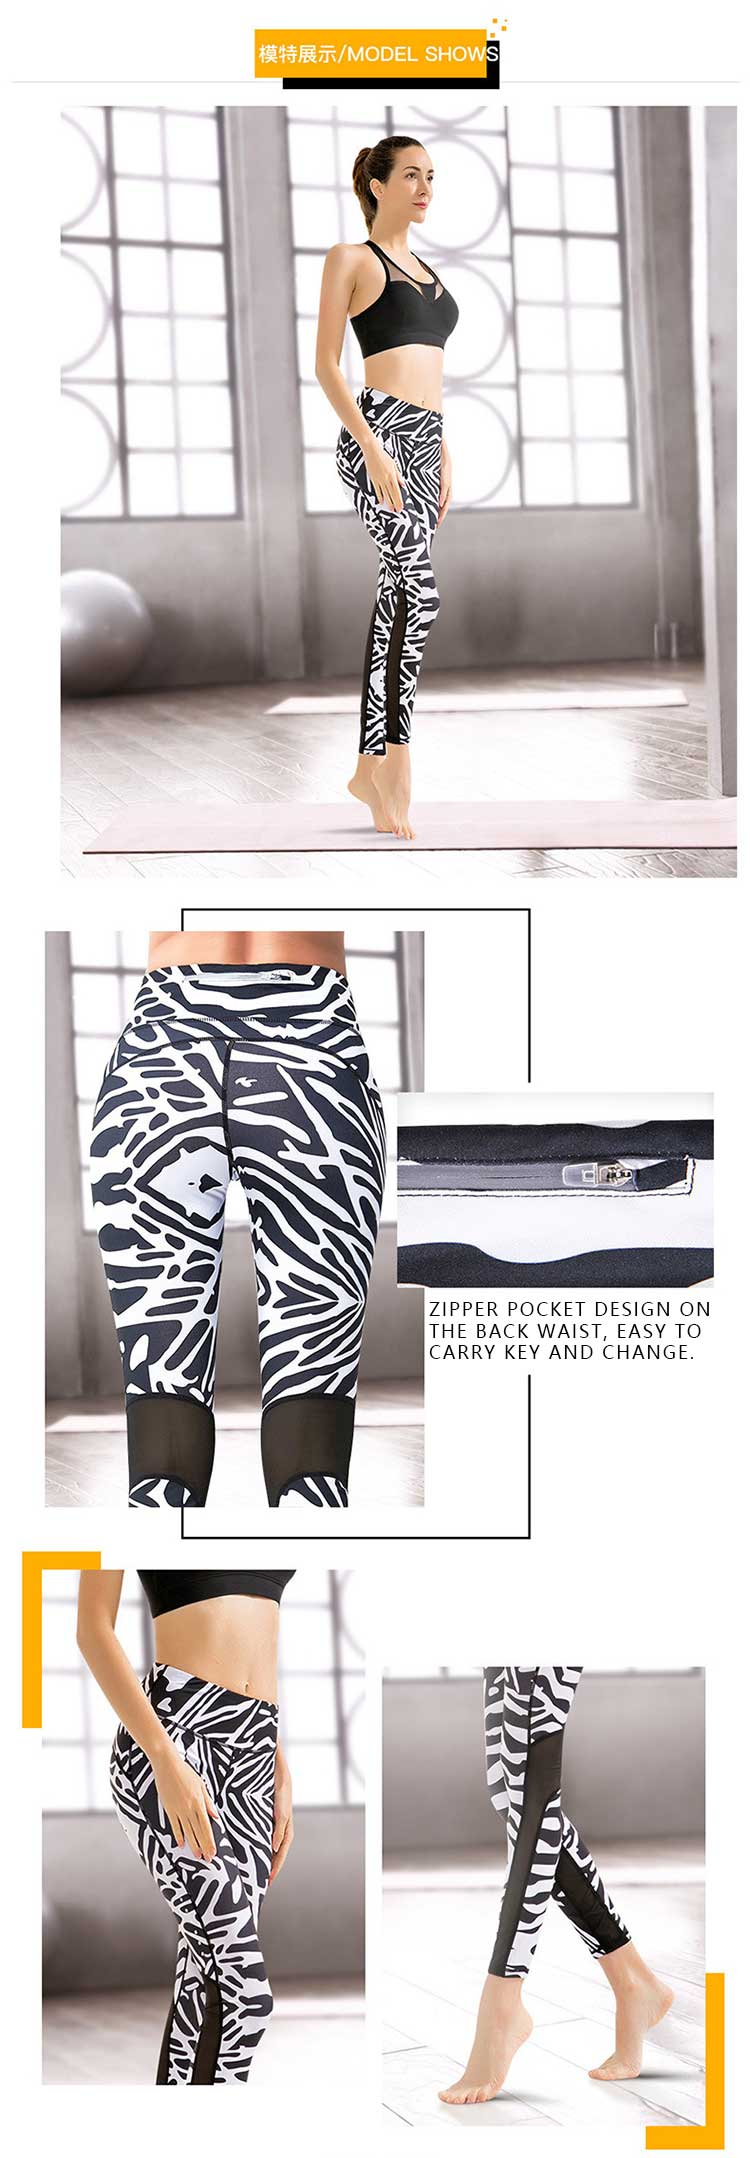 Zebra print mesh leggings with zipper pocket design on the back waist, easy to carry key and change